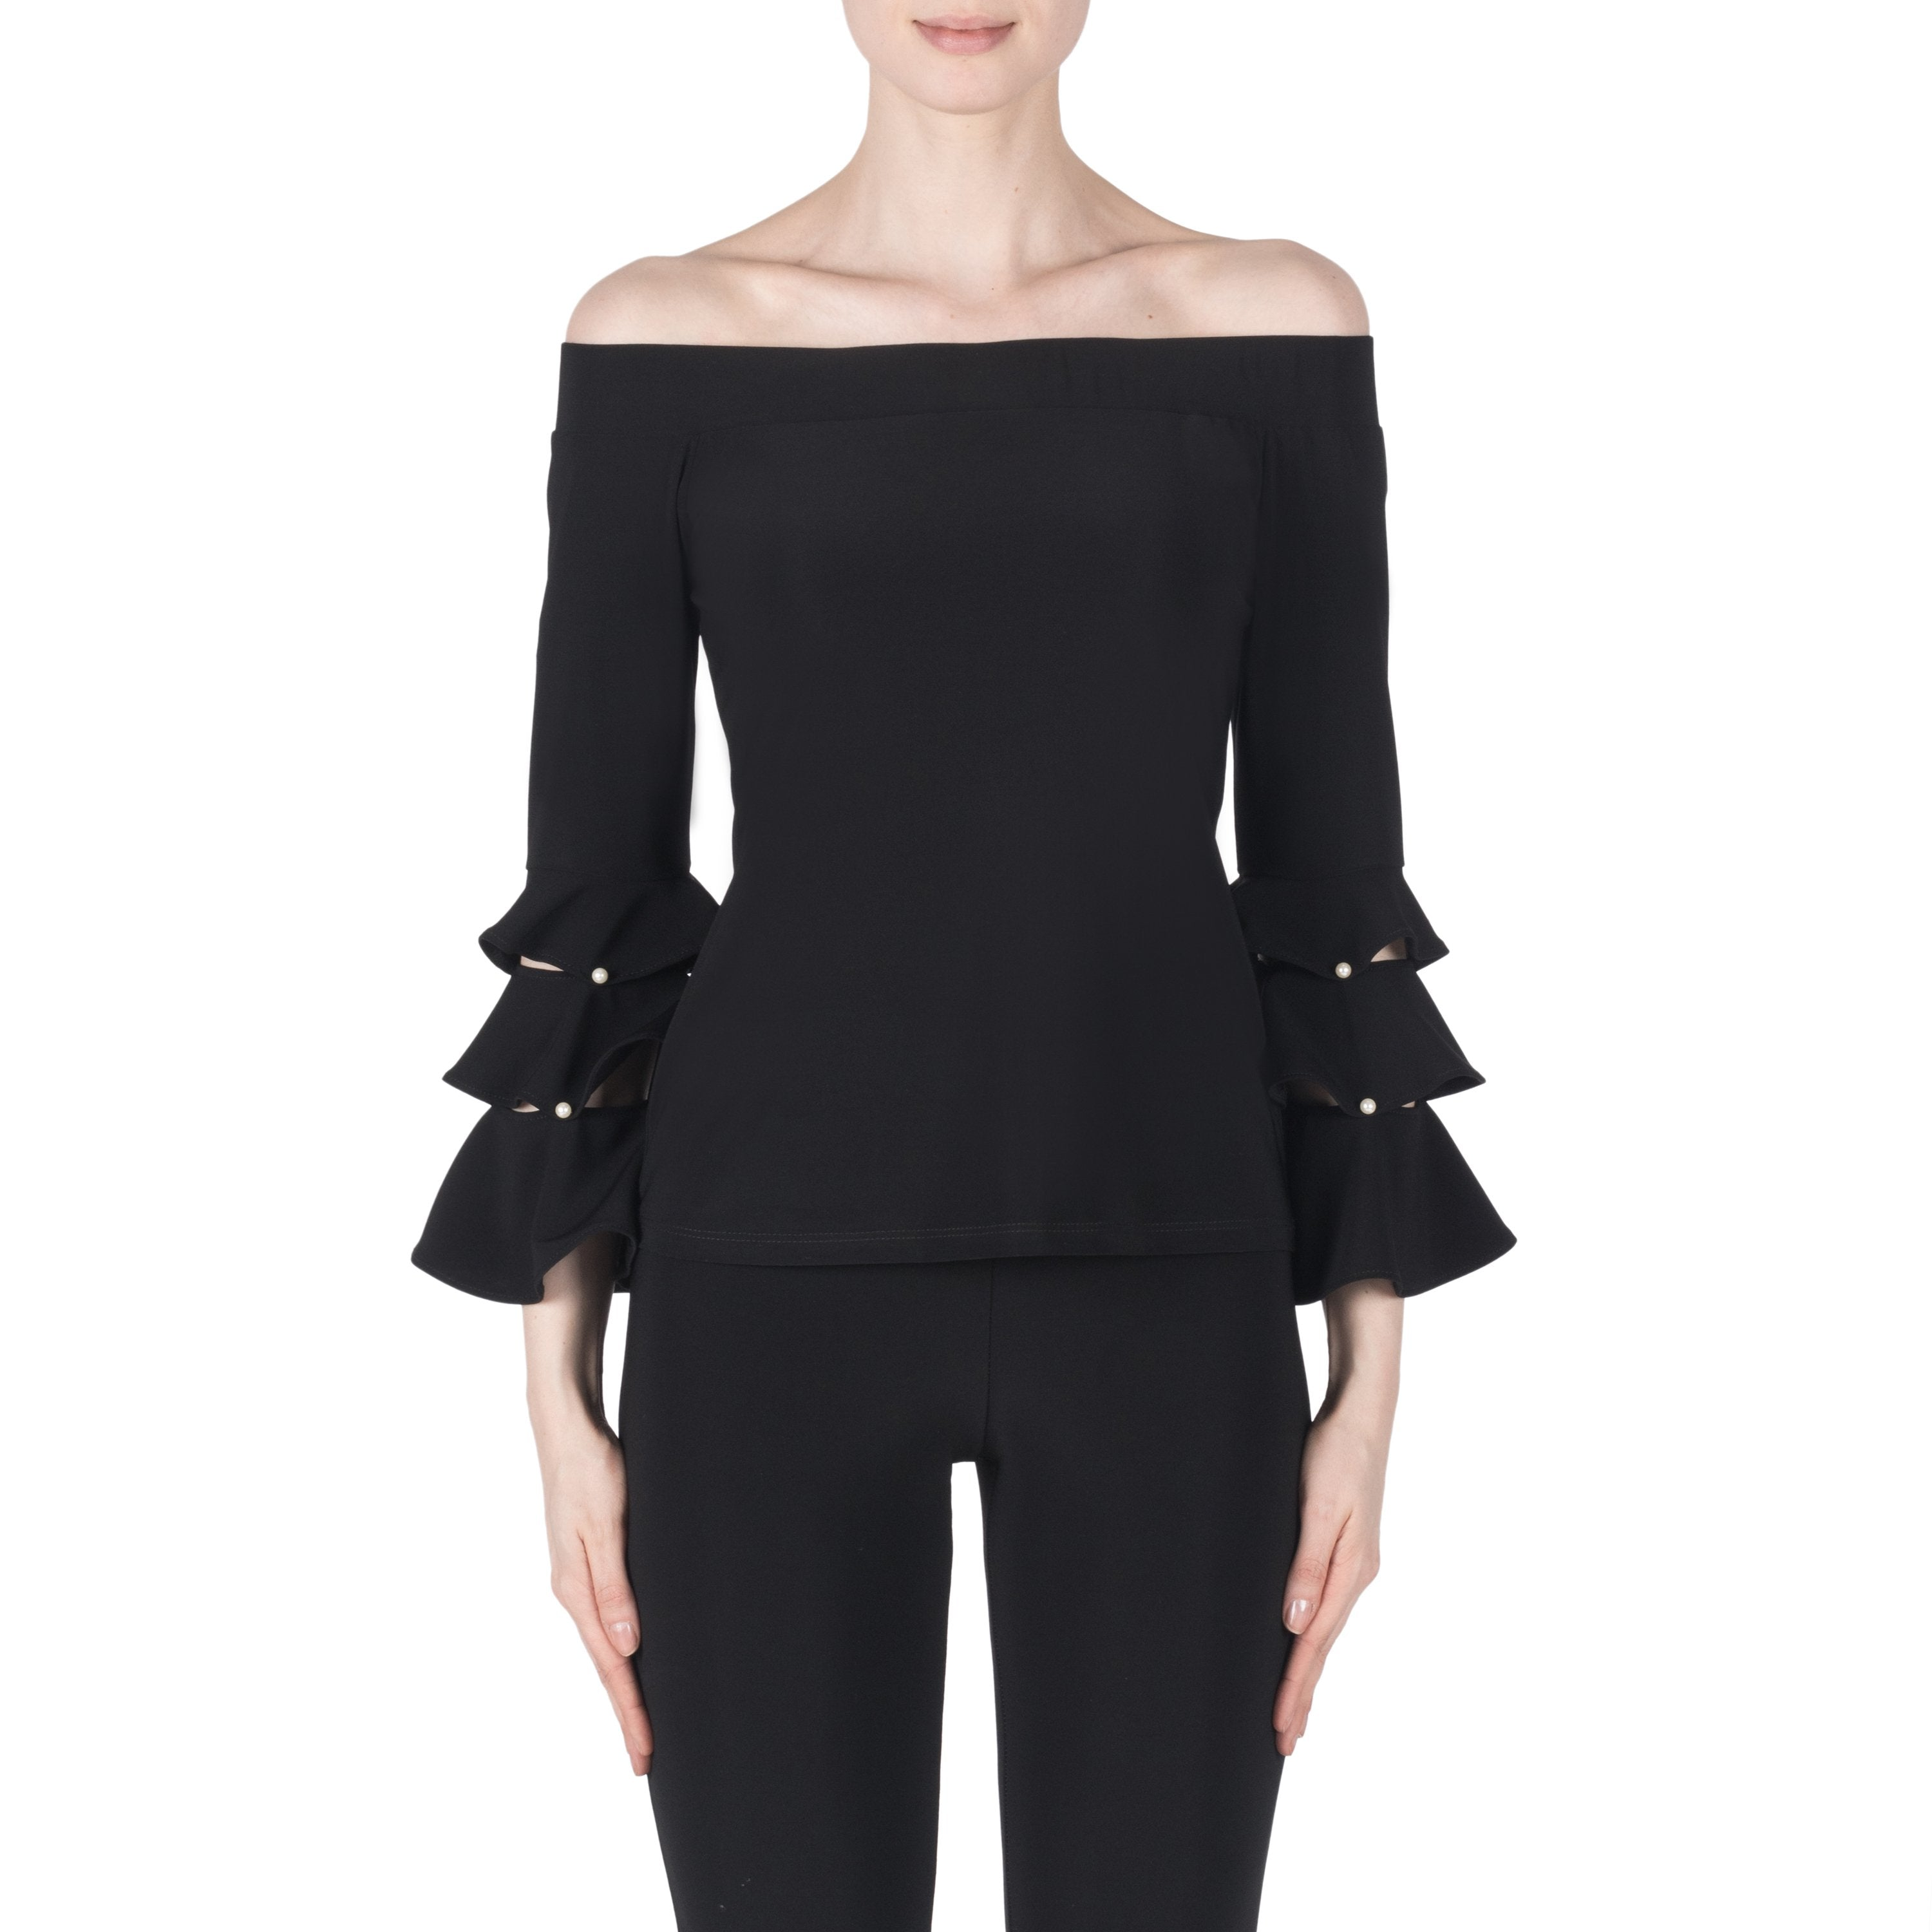 Image of Joseph Ribkoff Top Style 183156 Best Price On Sale